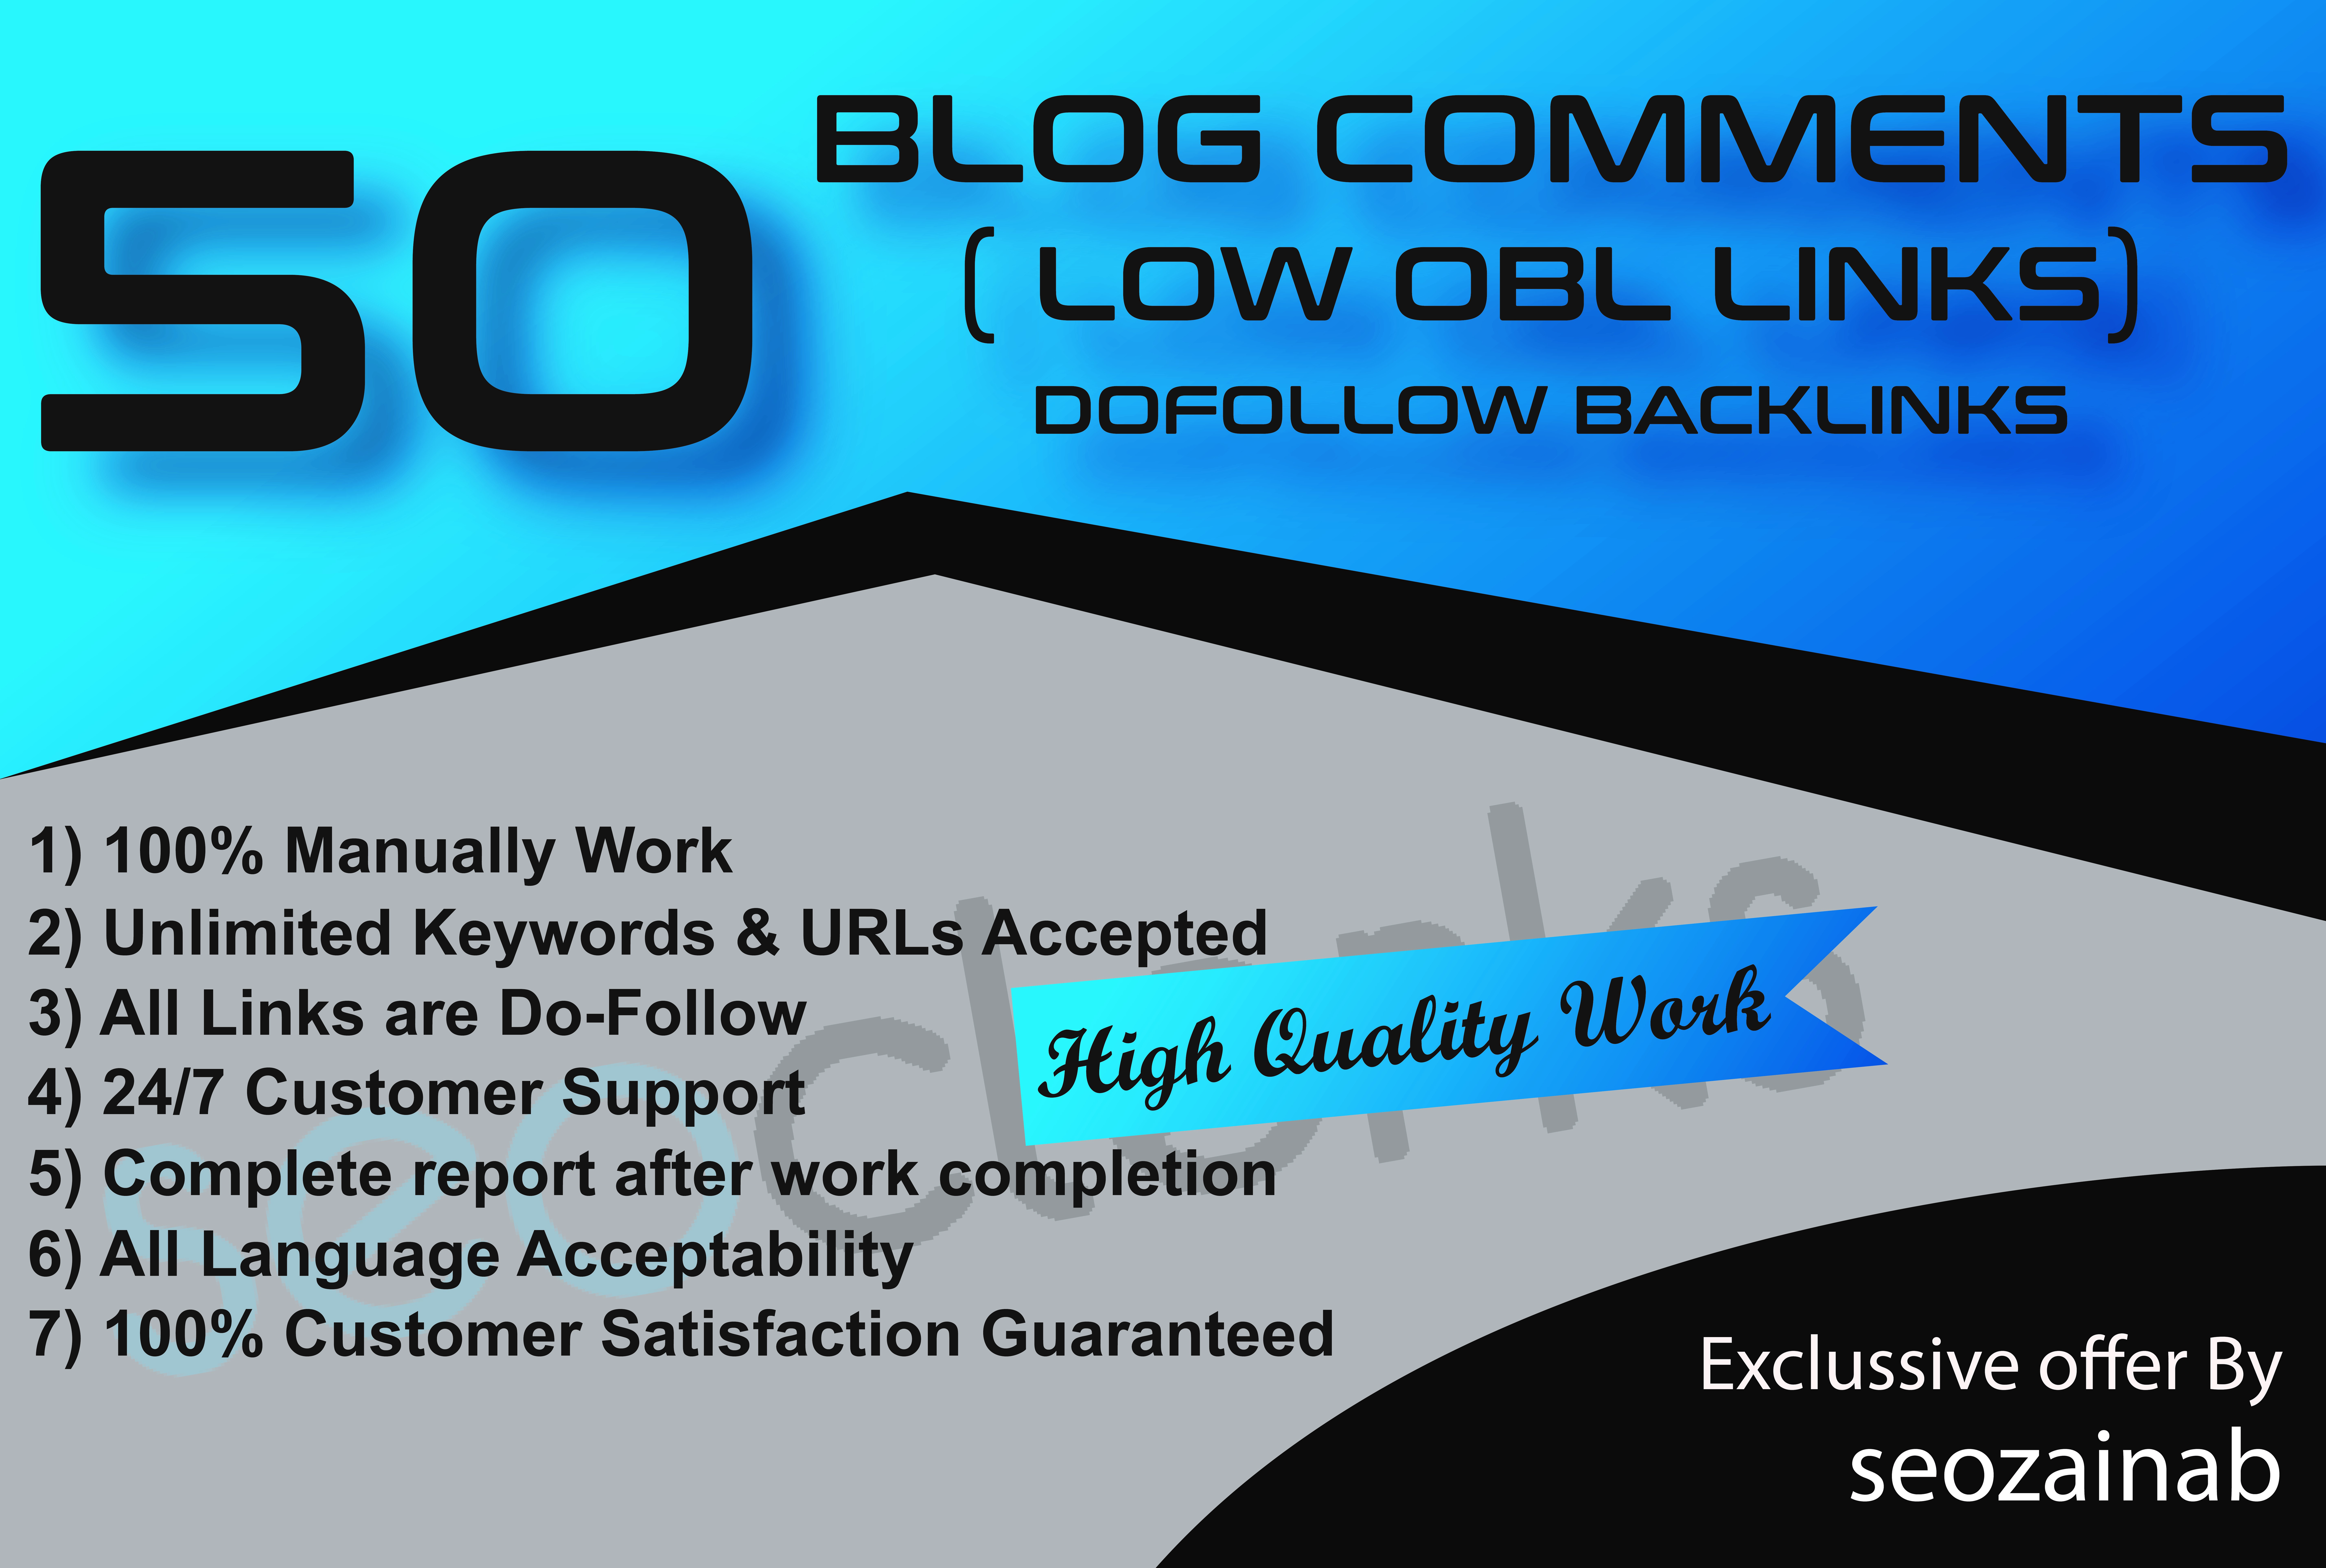 I Will Provide 50 Dofollow Blog Comments DA20+ with Low Obl & High Quality Backlinks